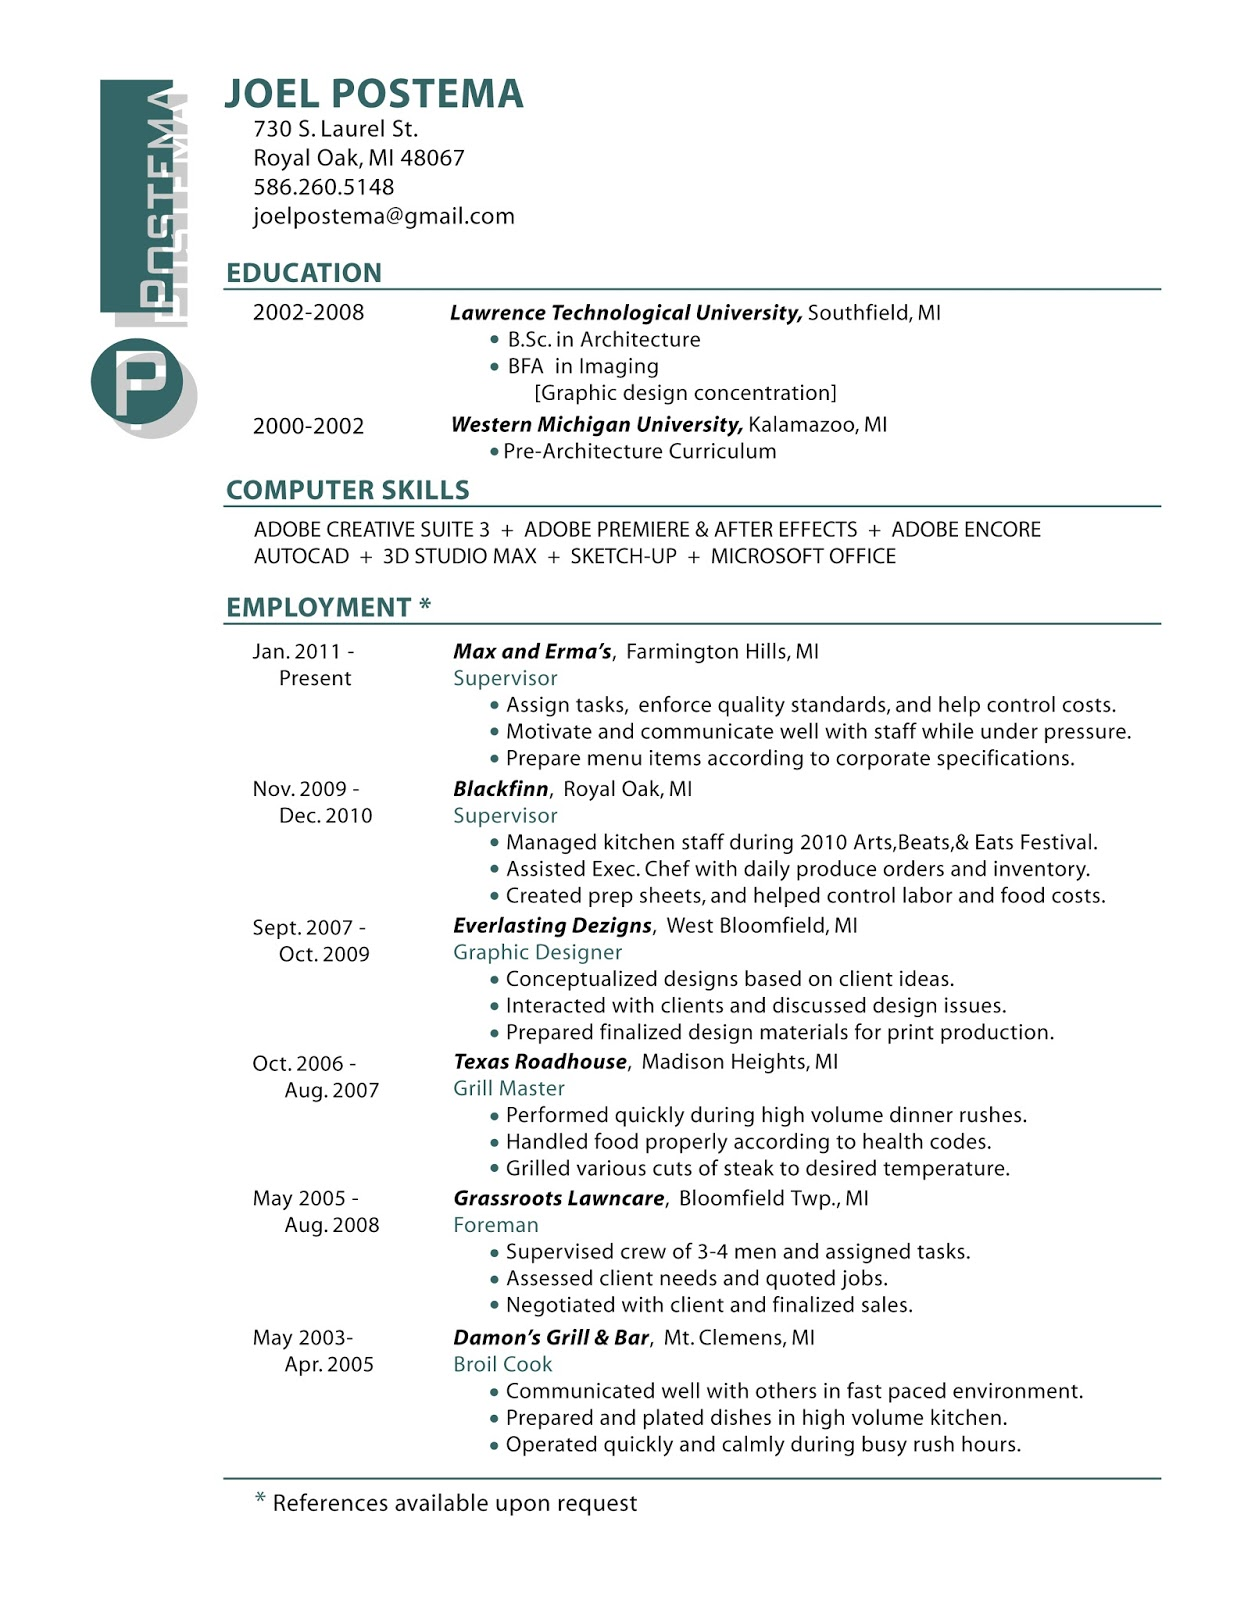 Java Developer Fresher Resume Effective Academic Writing 3 The Essay Oxford